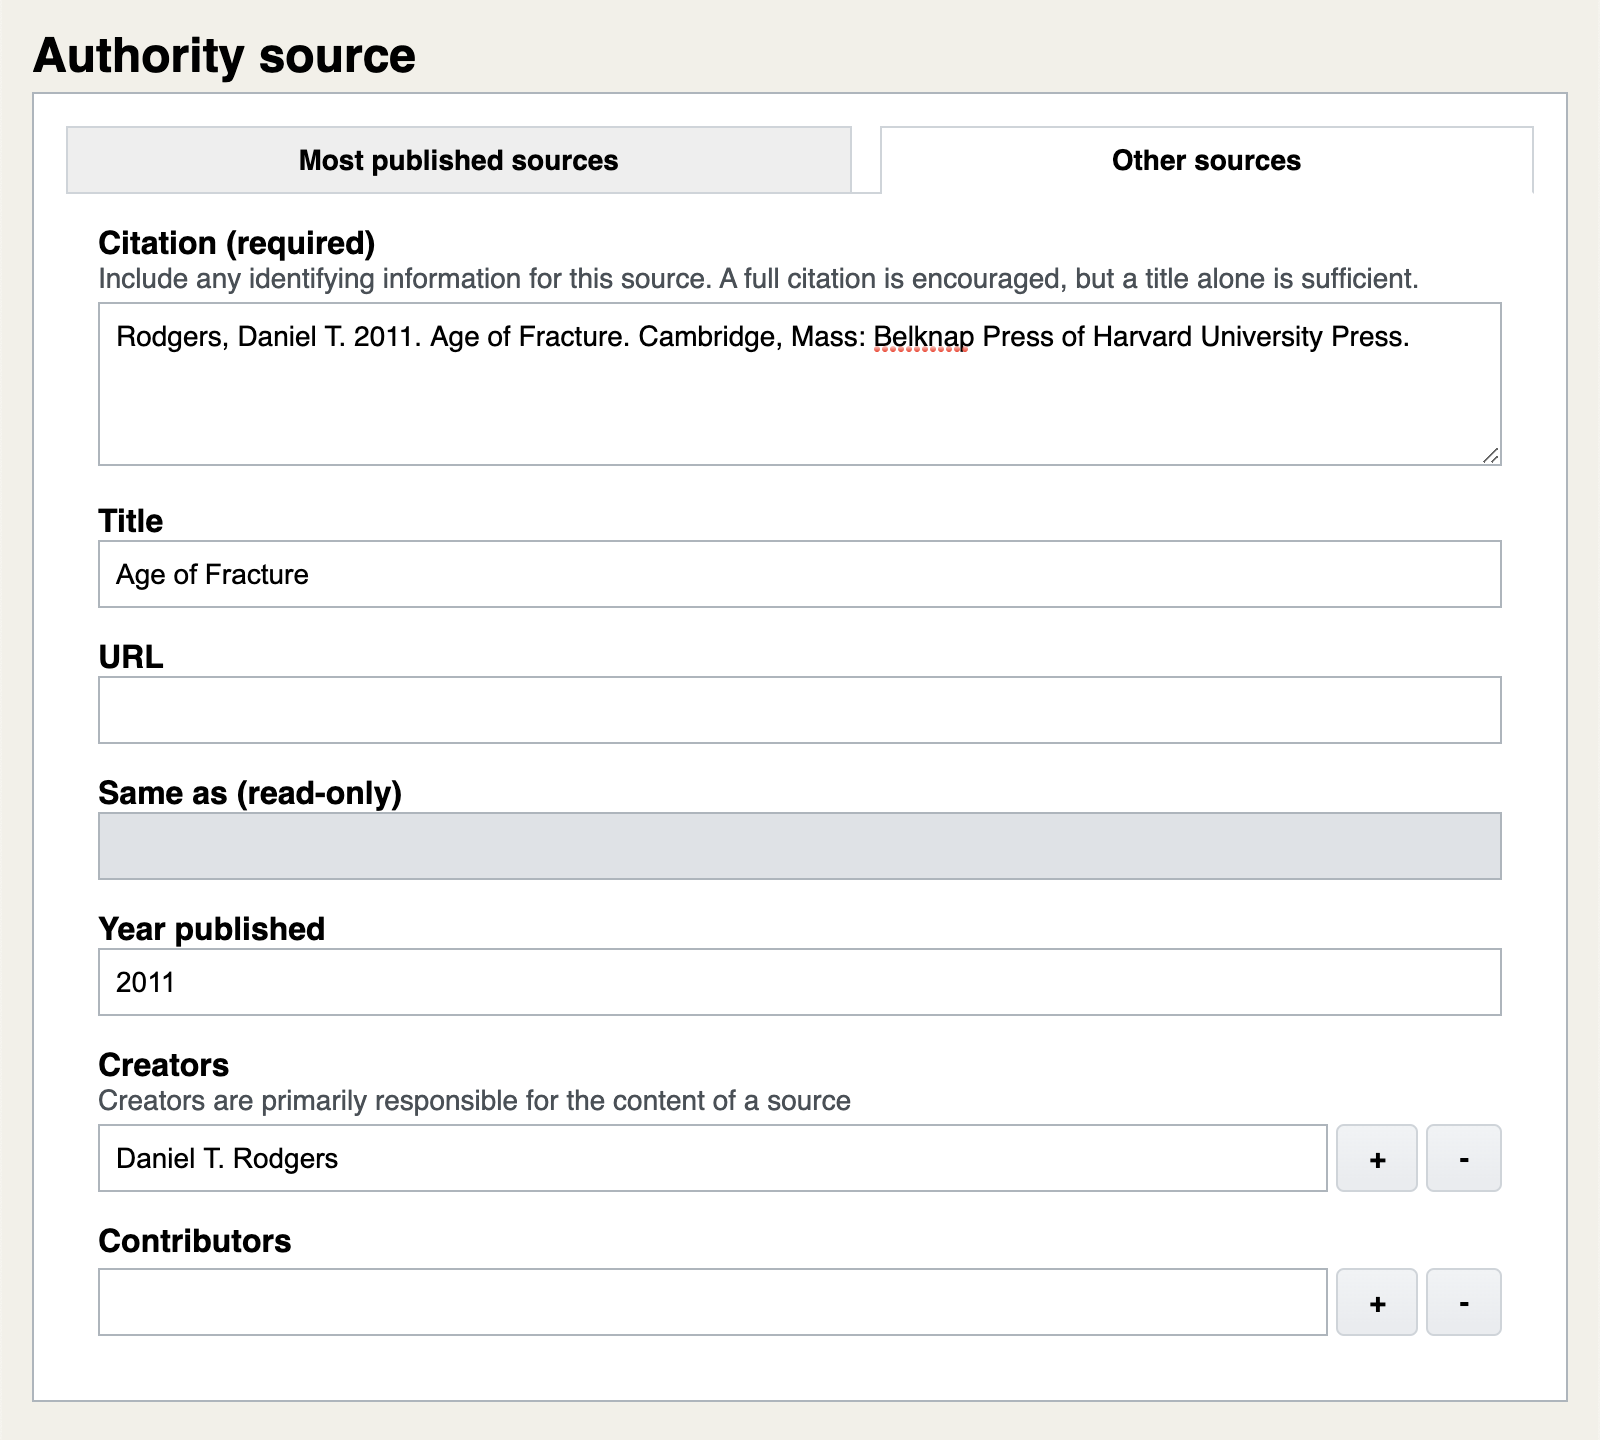 Manually entering citable information about an authority